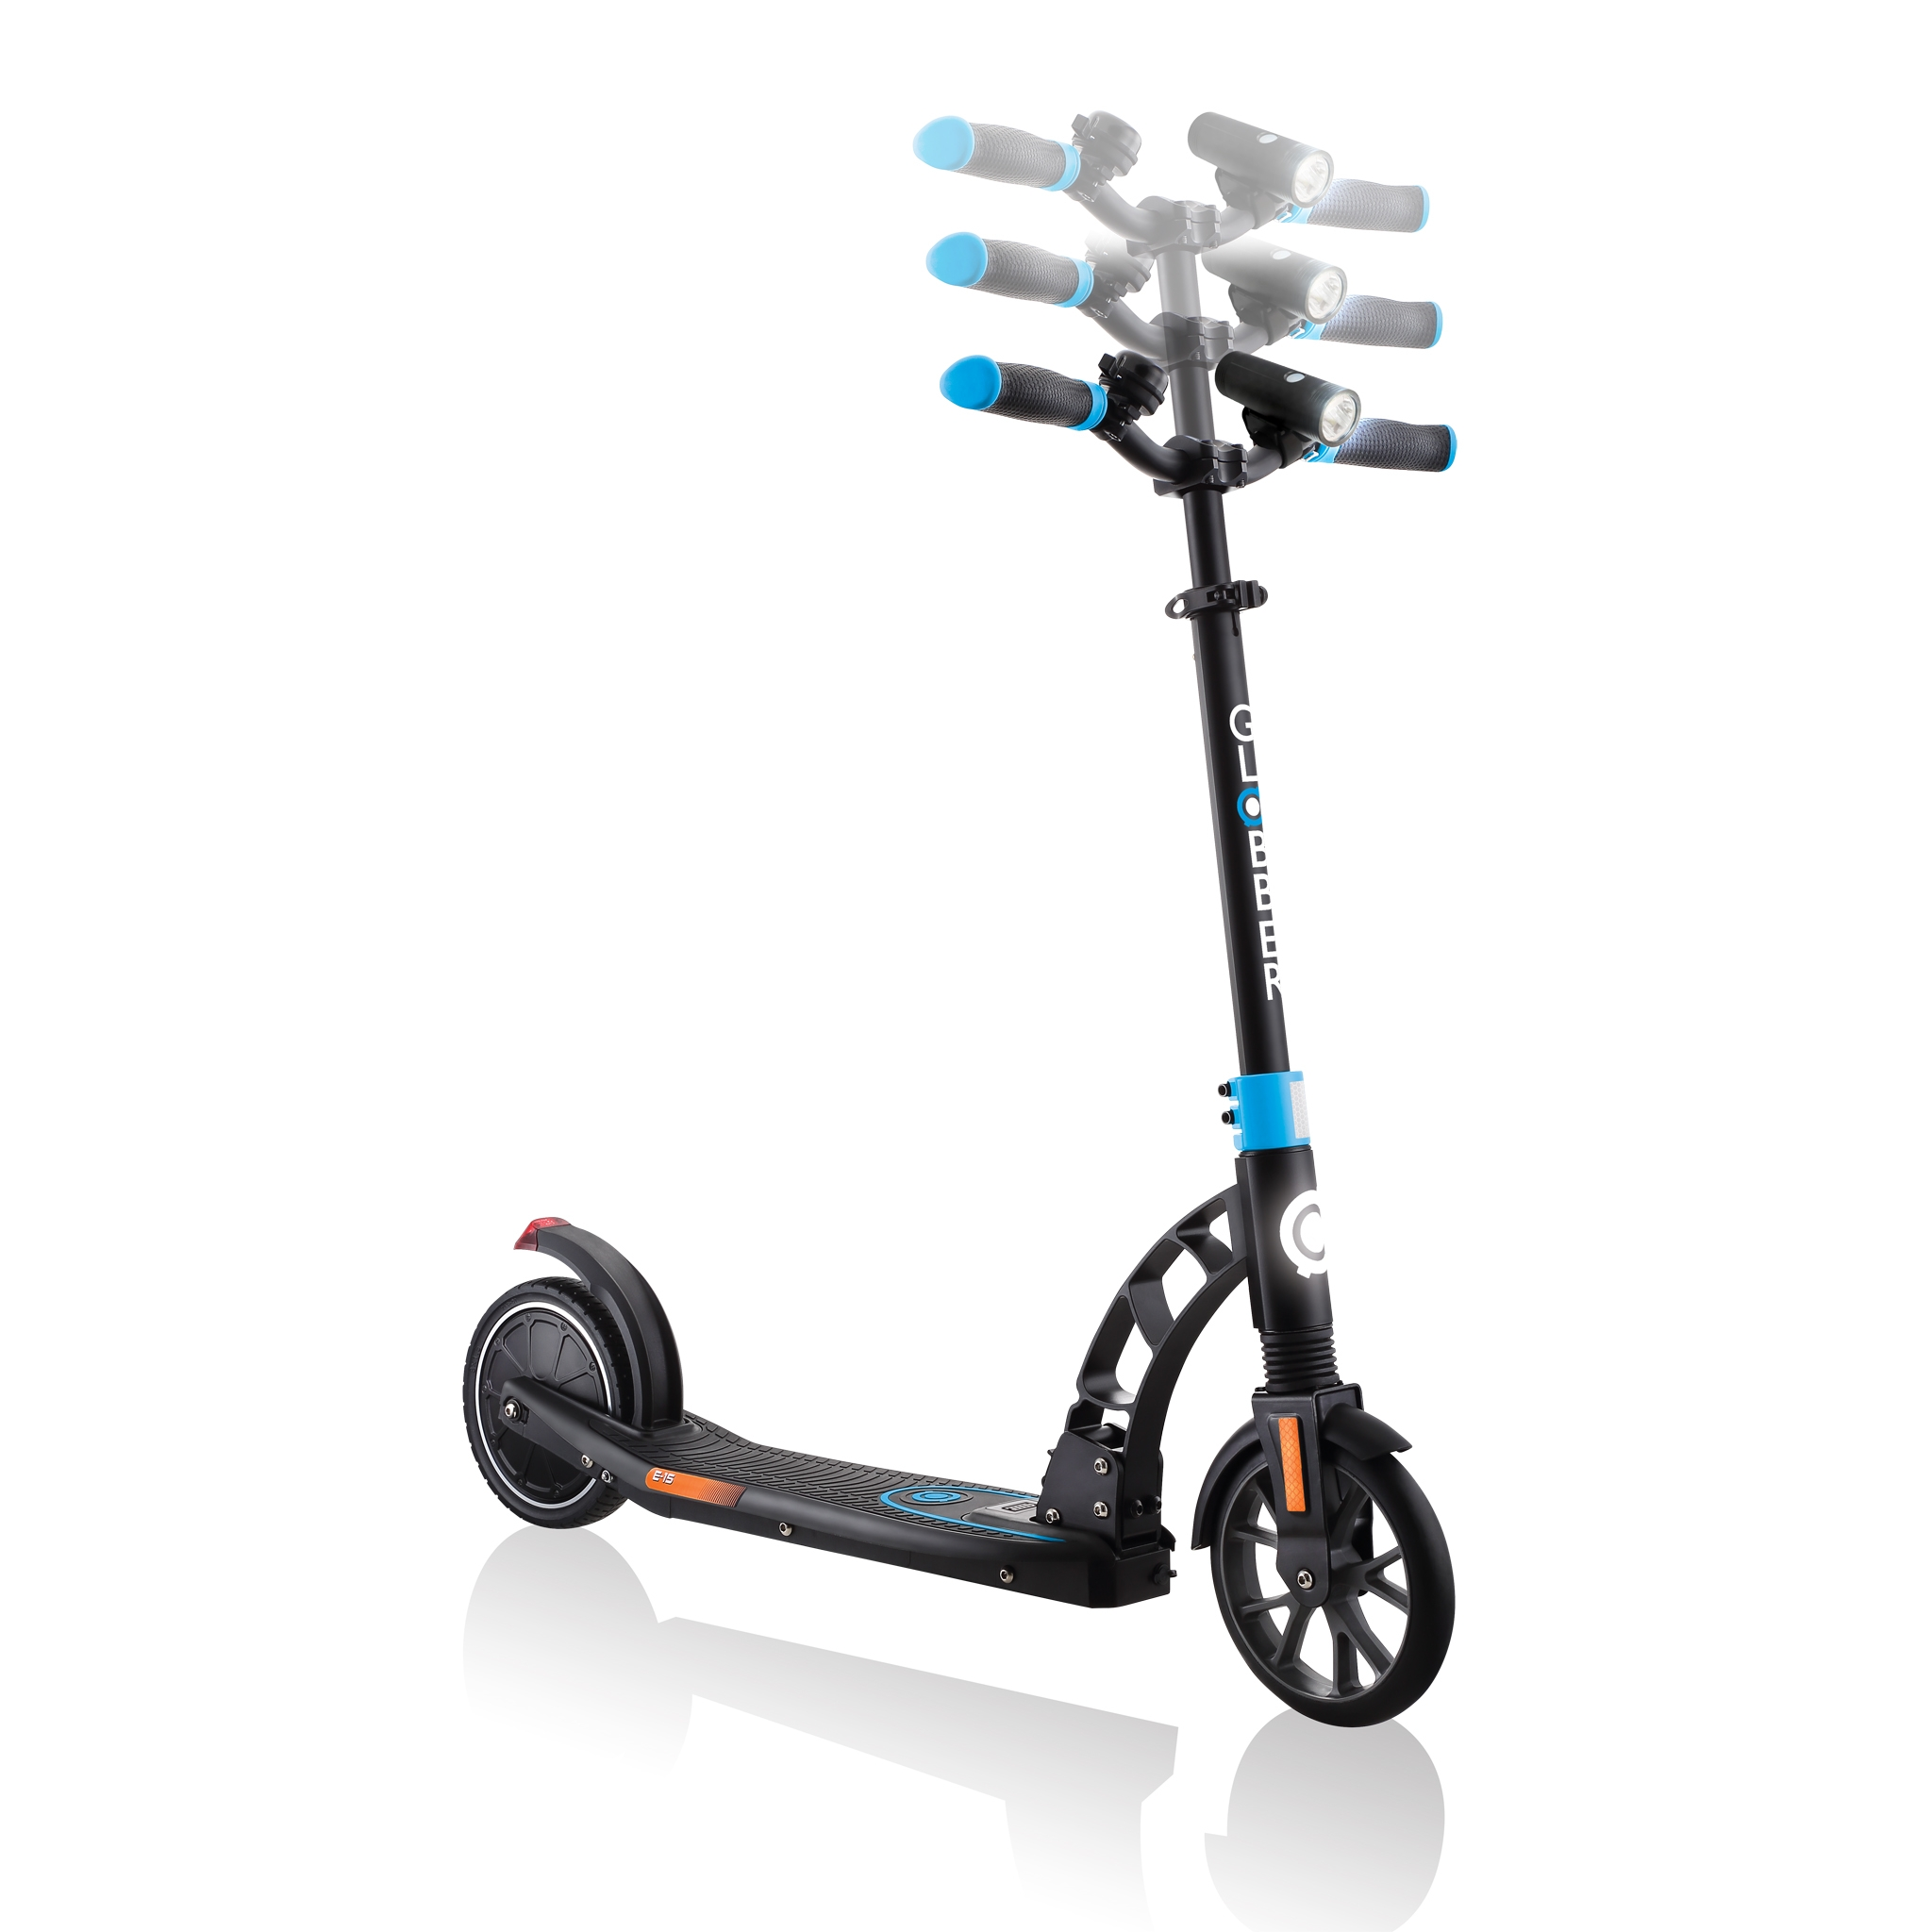 Globber-ONE-K-E-MOTION-15-3-height-adjustable-electric-scooter-for-adults-and-teens-aged-14-and-above